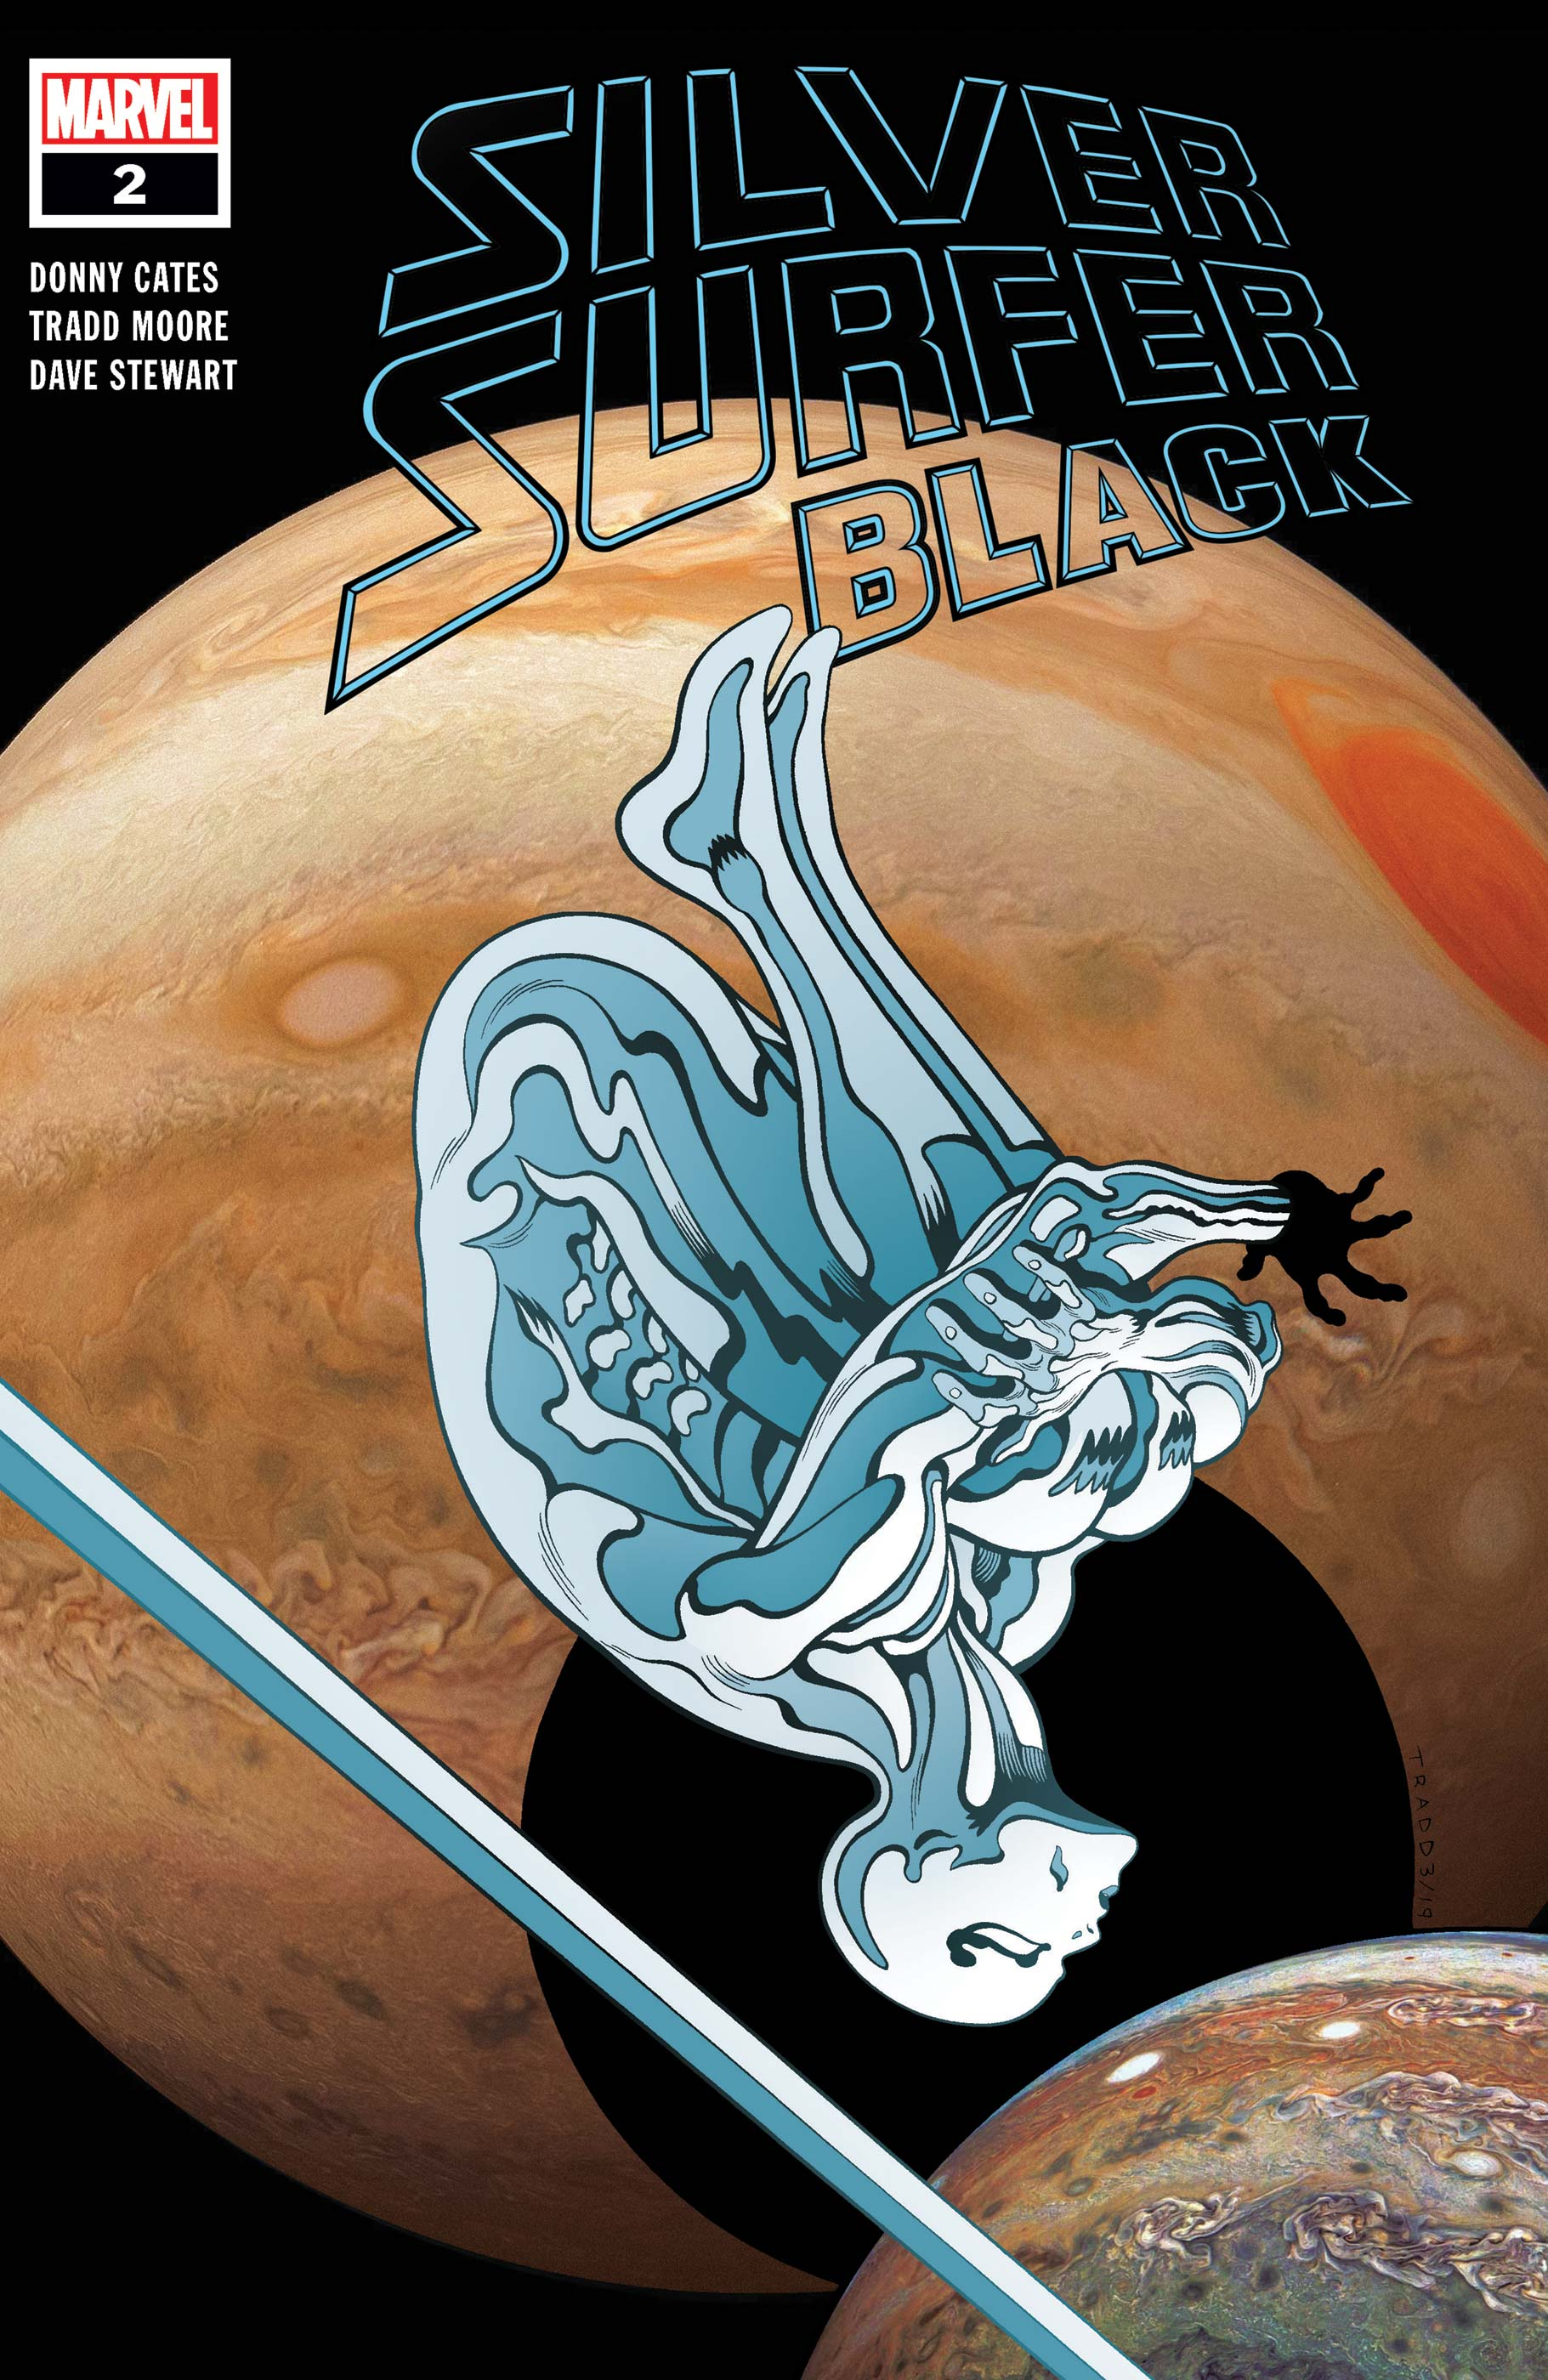 Silver Surfer: Black (2019) #2